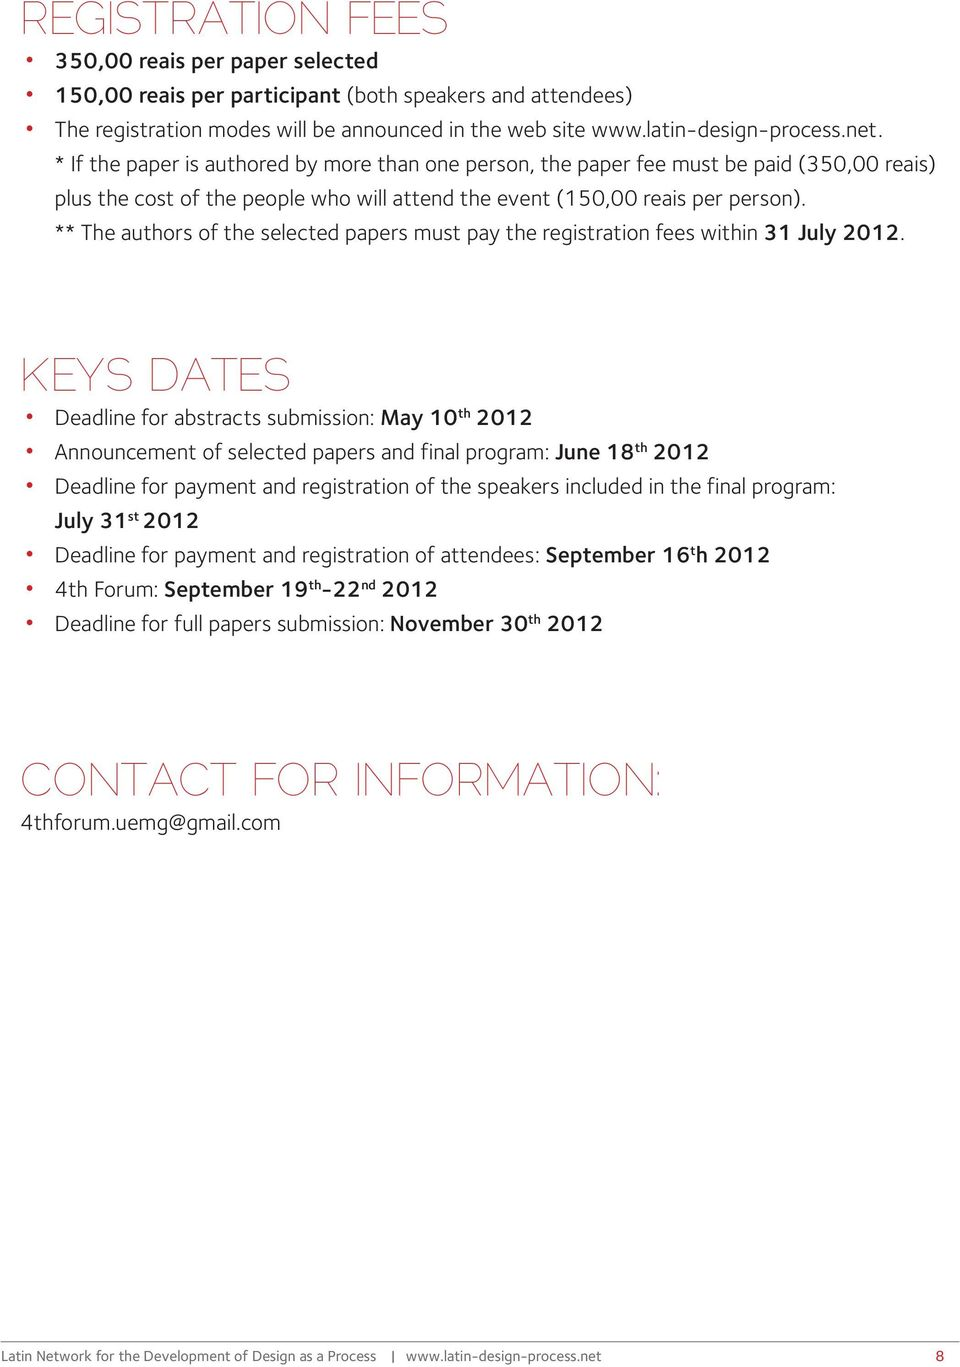 ** The authors of the selected papers must pay the registration fees within 31 July 2012.